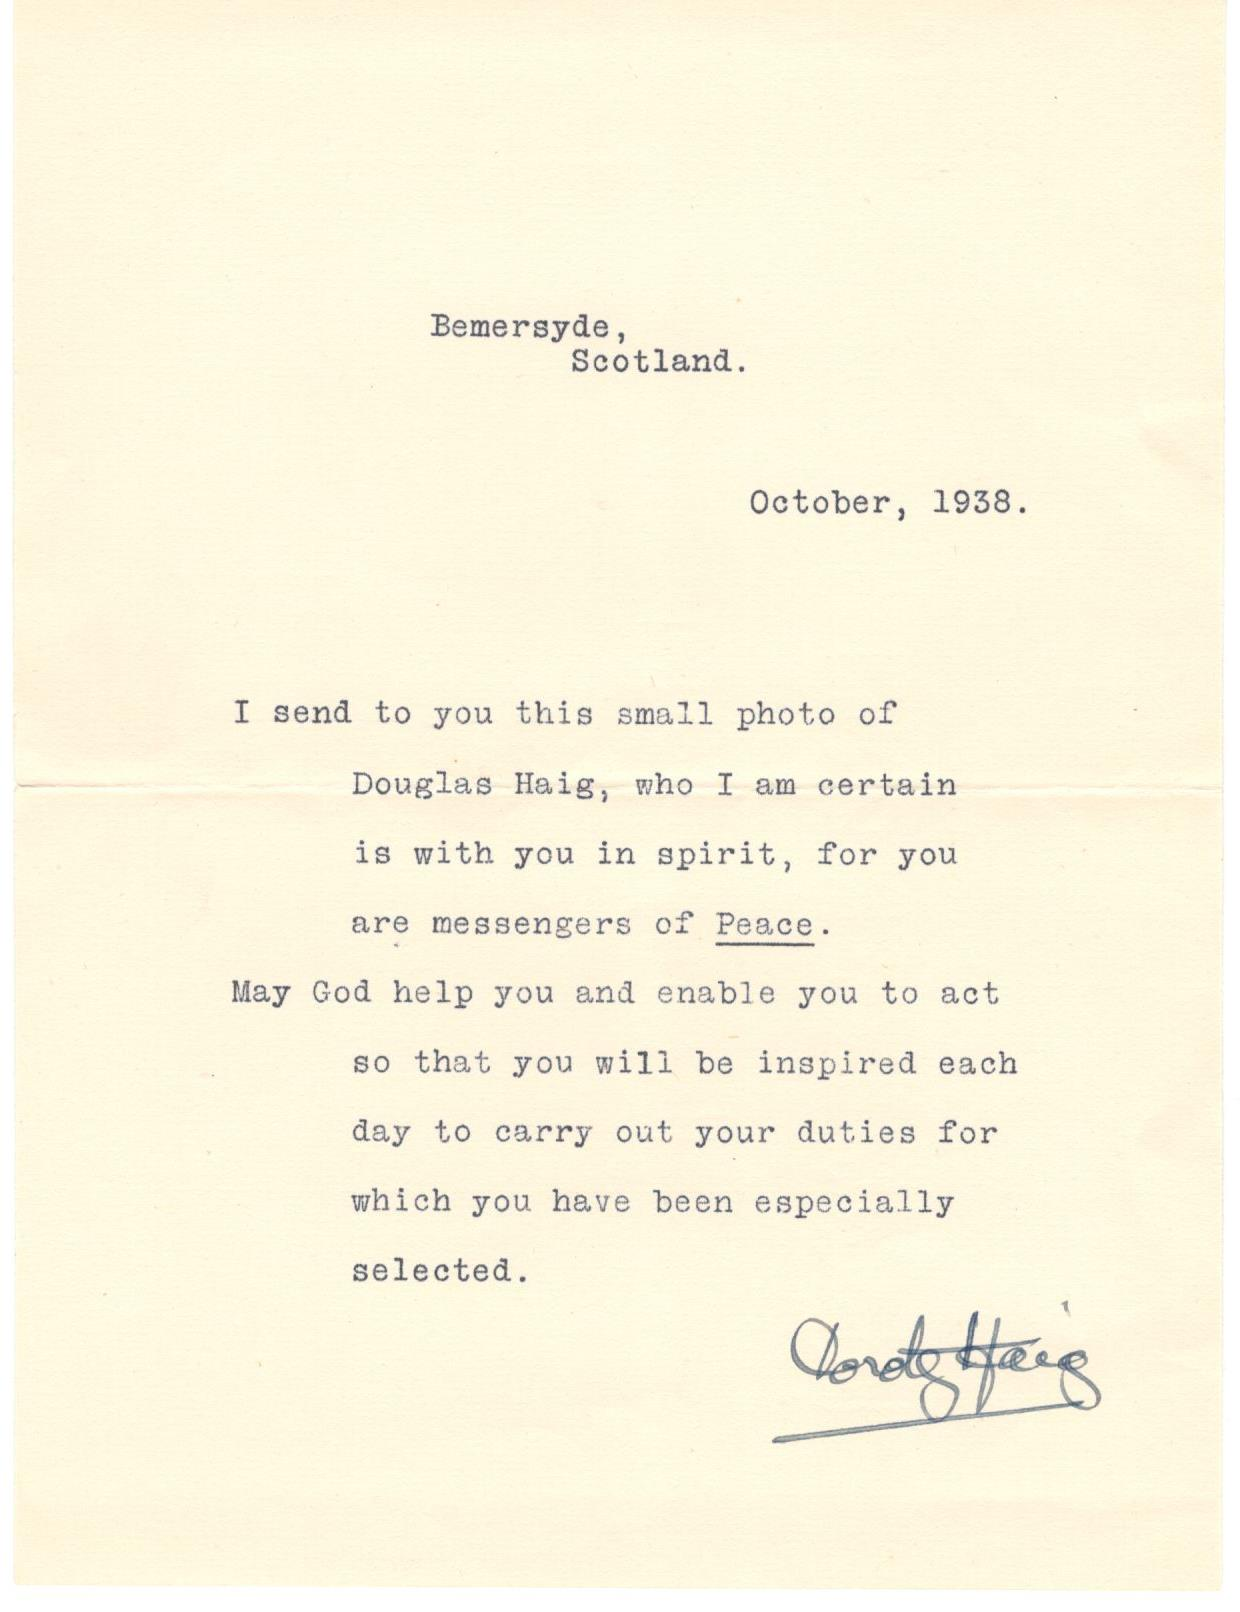 Symbol Of Peace Letter Lady Haig Poppy Factory